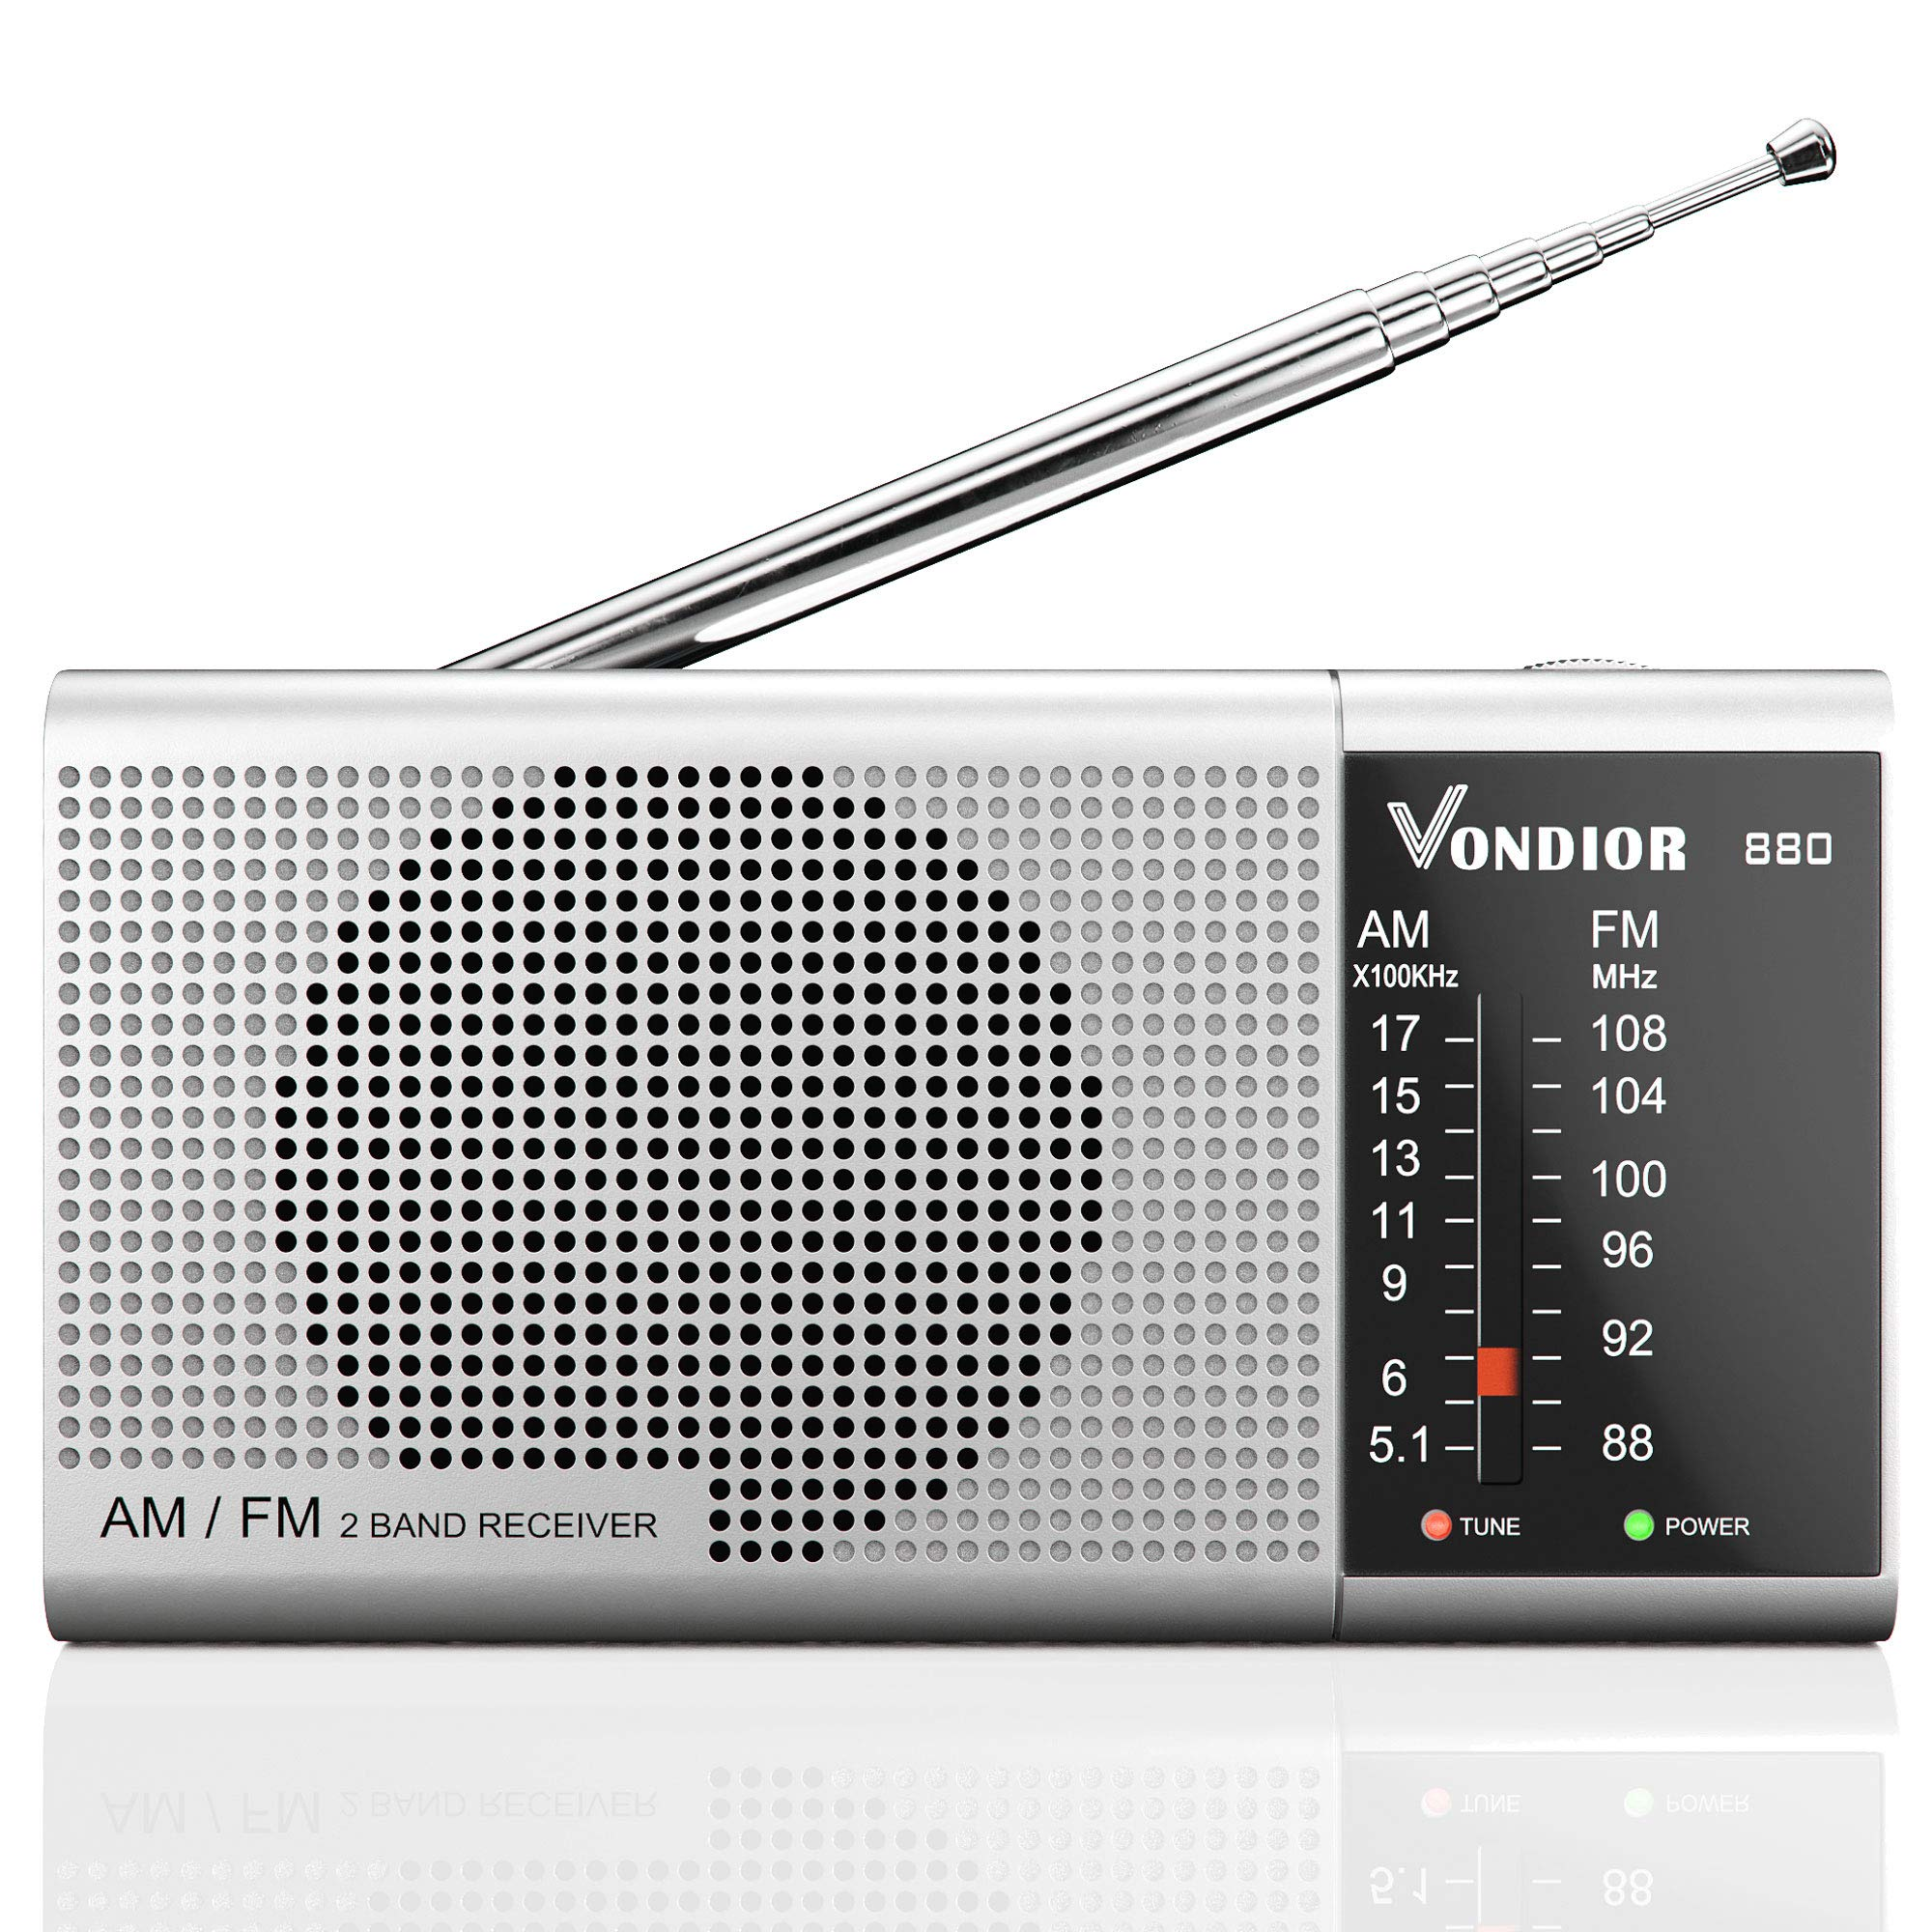 AM FM Transistor Radio - Best Reception and Longest Lasting. AM FM Portable Radio Player Operated by 2 AA Battery, Mono Headphone Socket, by Vondior (Silver)